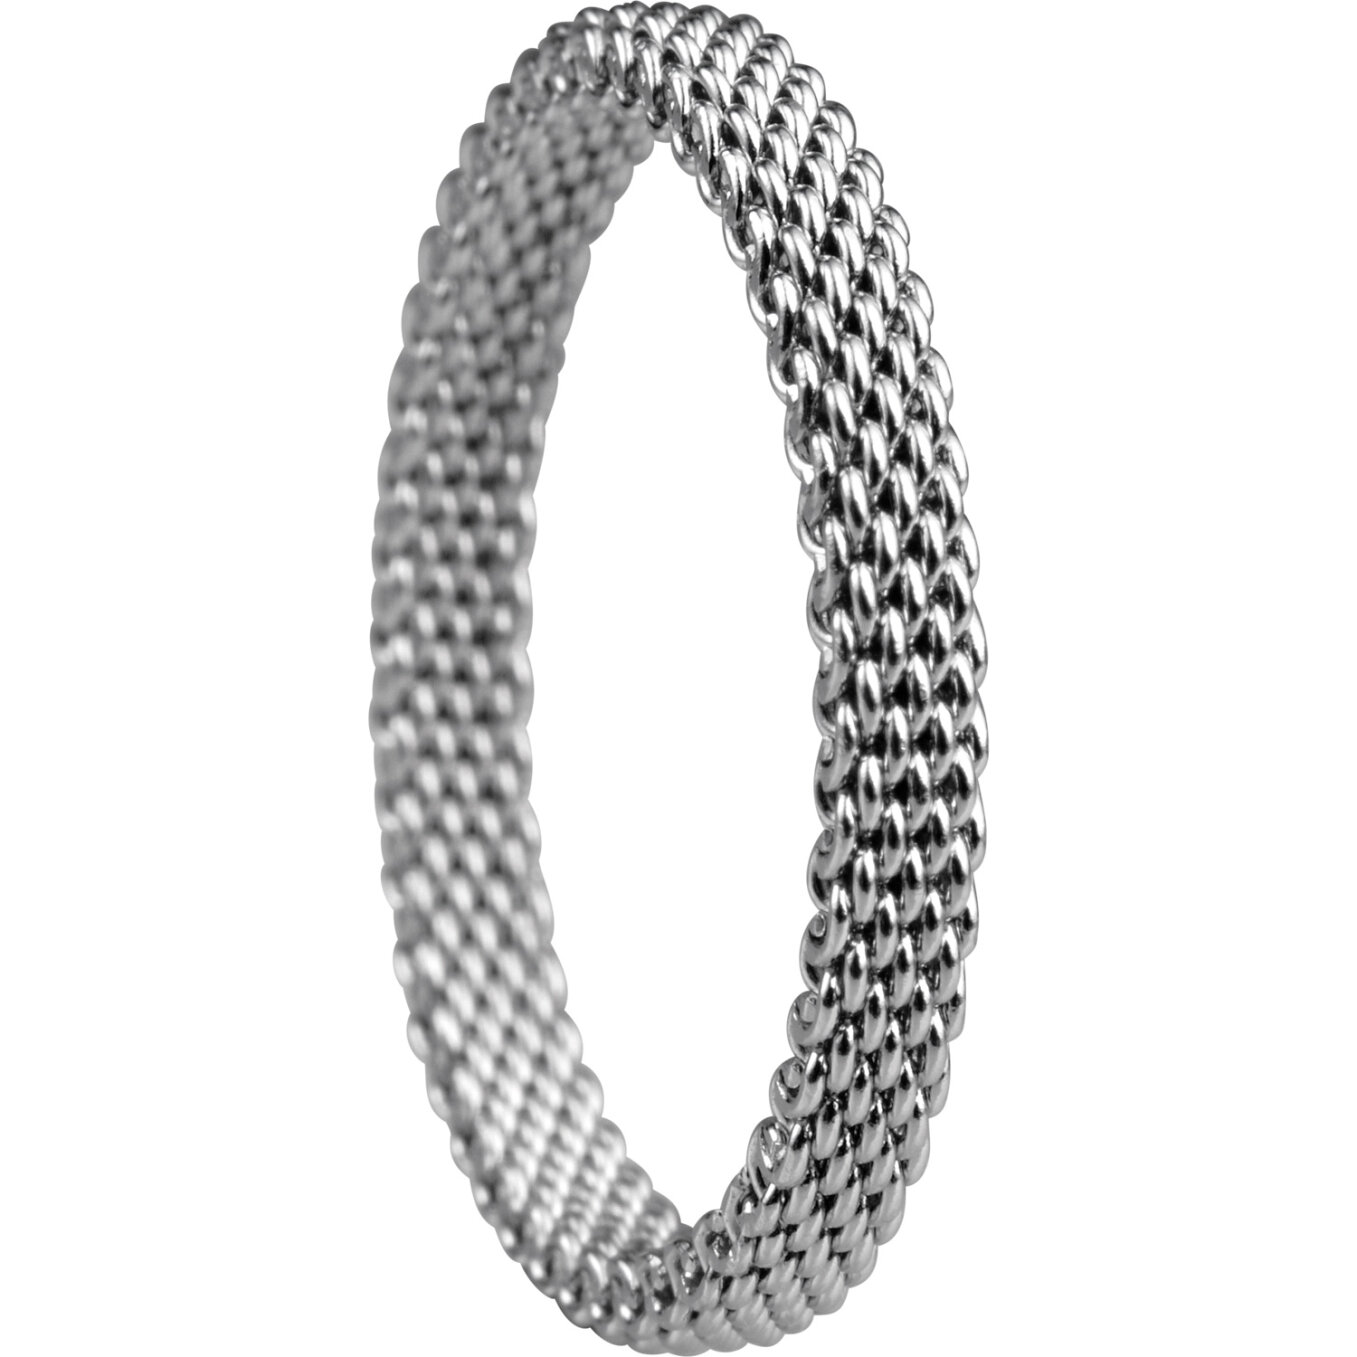 Bering Innenring 551-10-91 Milanaise silber